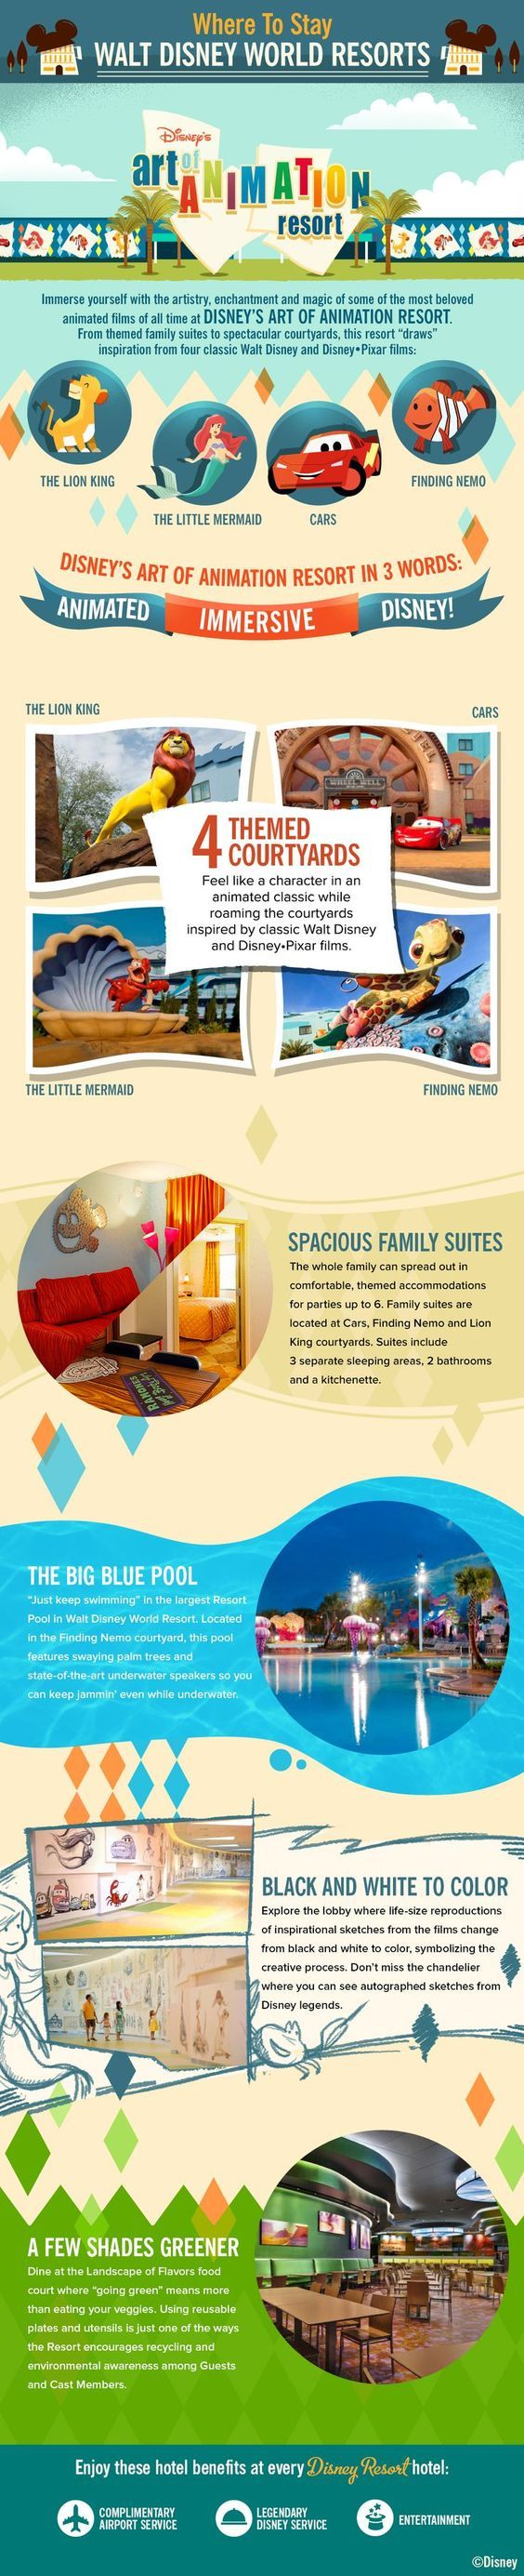 """Immerse yourself with the artistry, enchantment and magic of some of the most beloved animated films of all time at Disney's Art of Animation Resort at Walt Disney World. From themed family suites to spectacular courtyards, this resort """"draws"""" inspiration from four classic Walt Disney and Disney•Pixar films."""